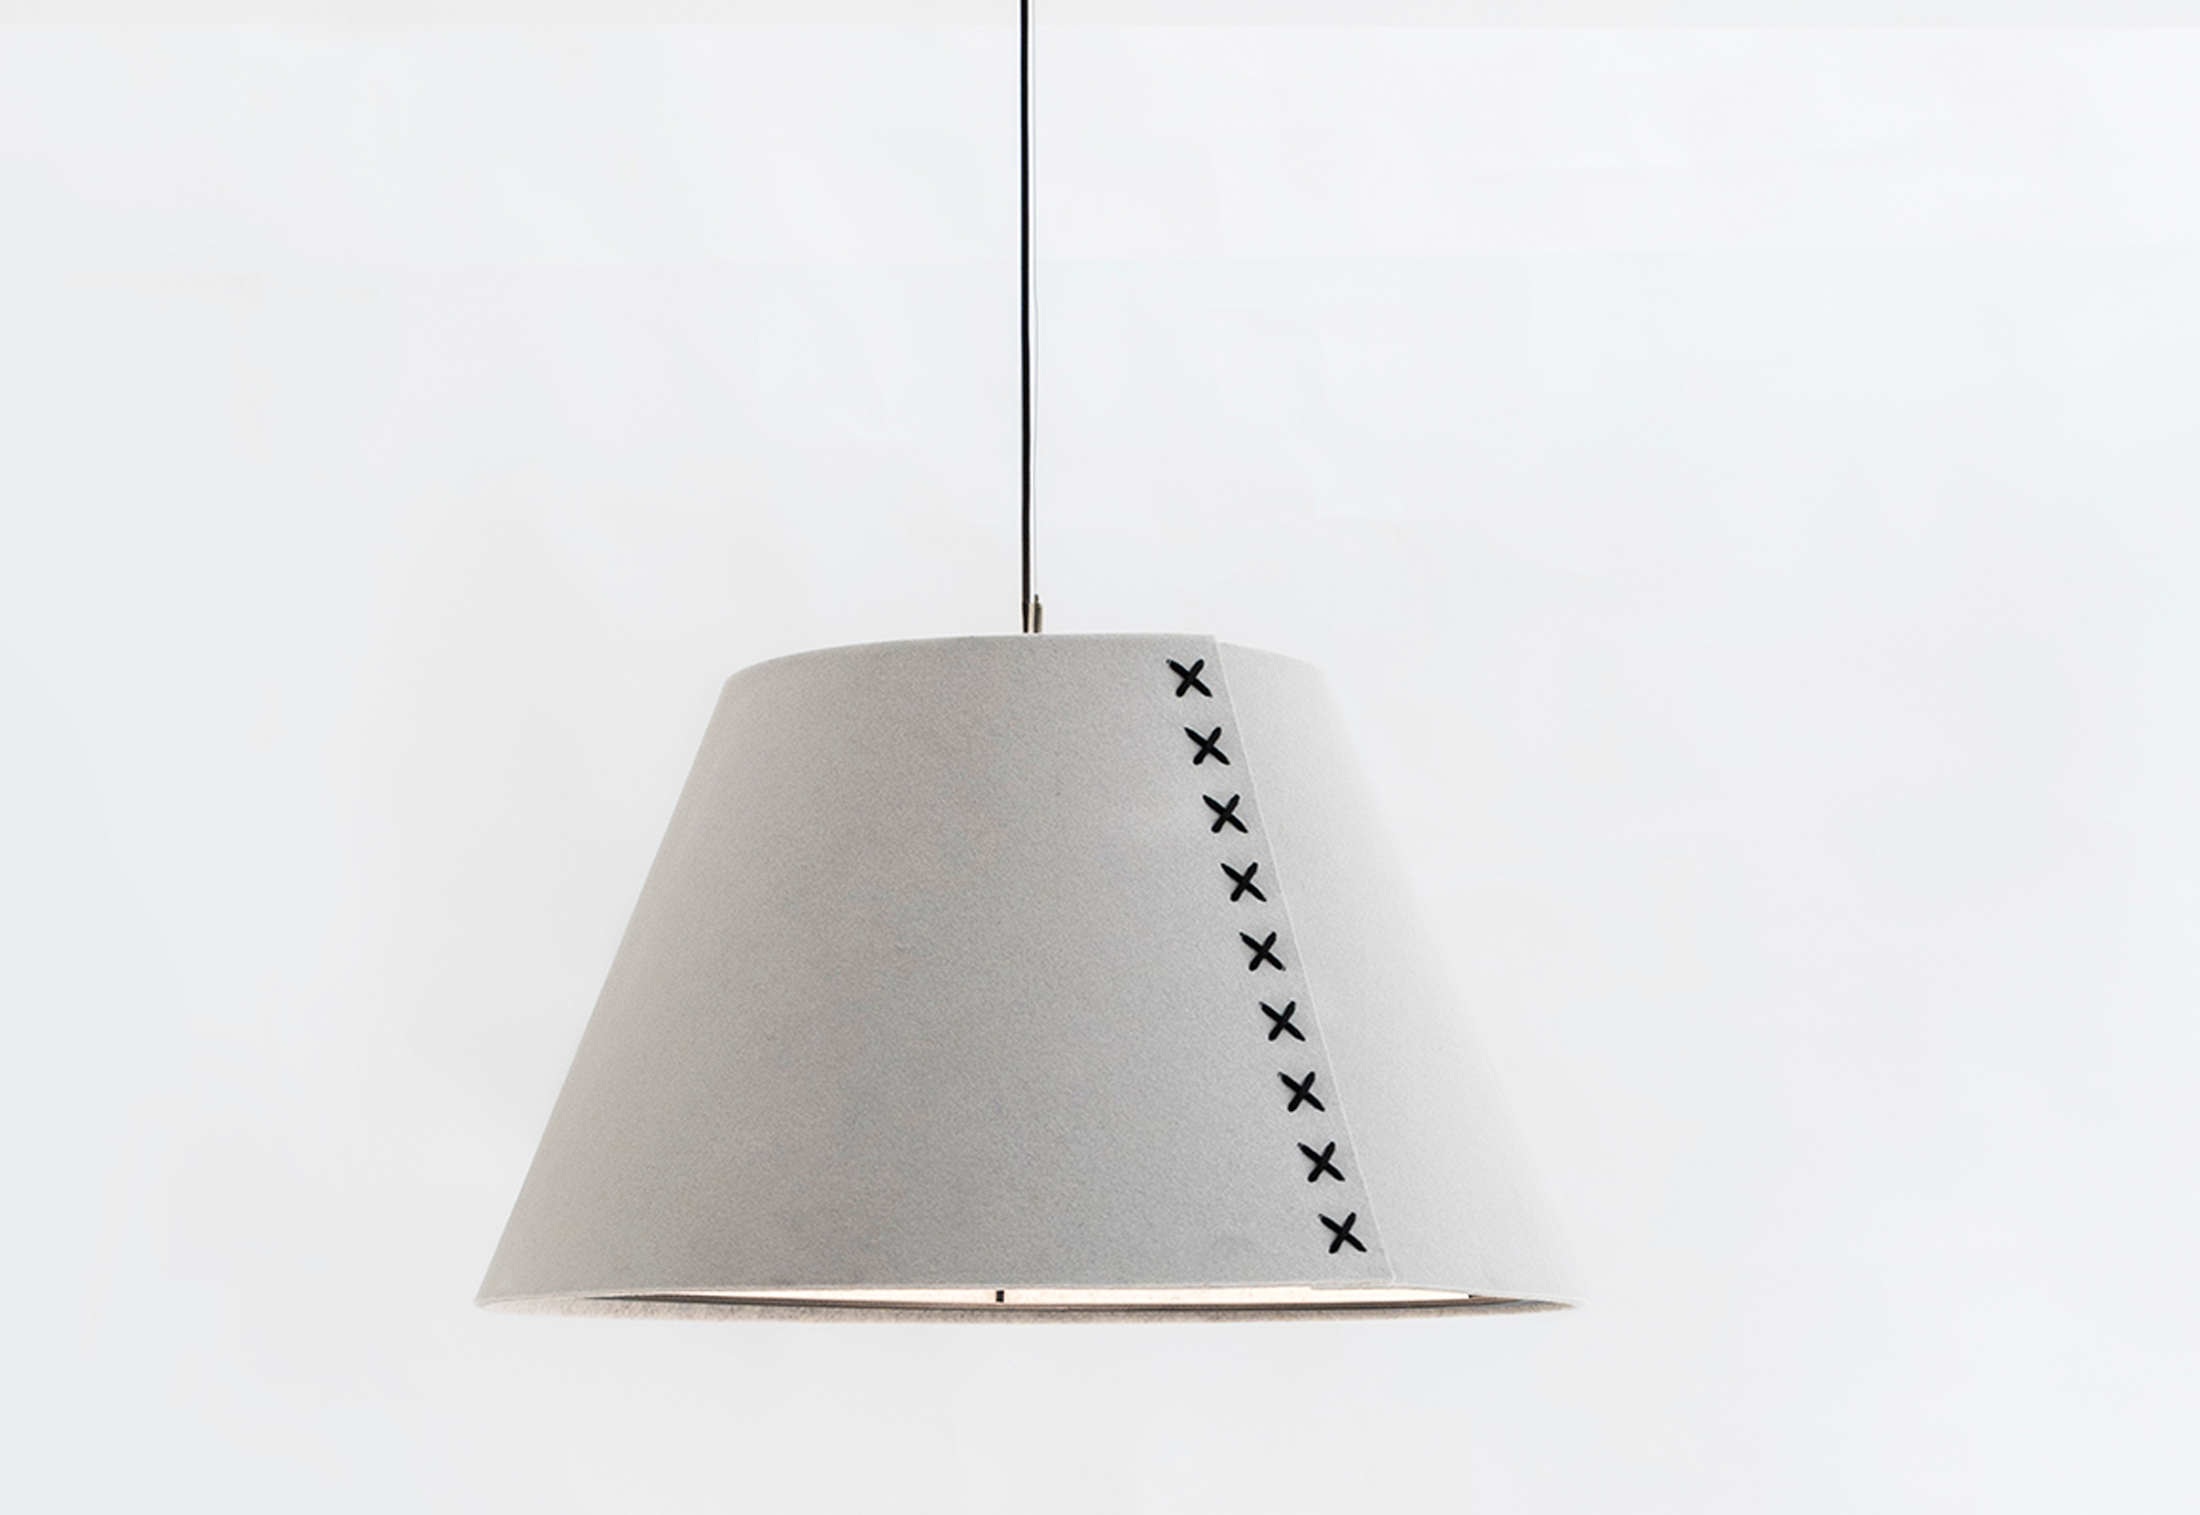 Buzzi & Buzzi Lighting buzzishade pendant by buzzispace | stylepark